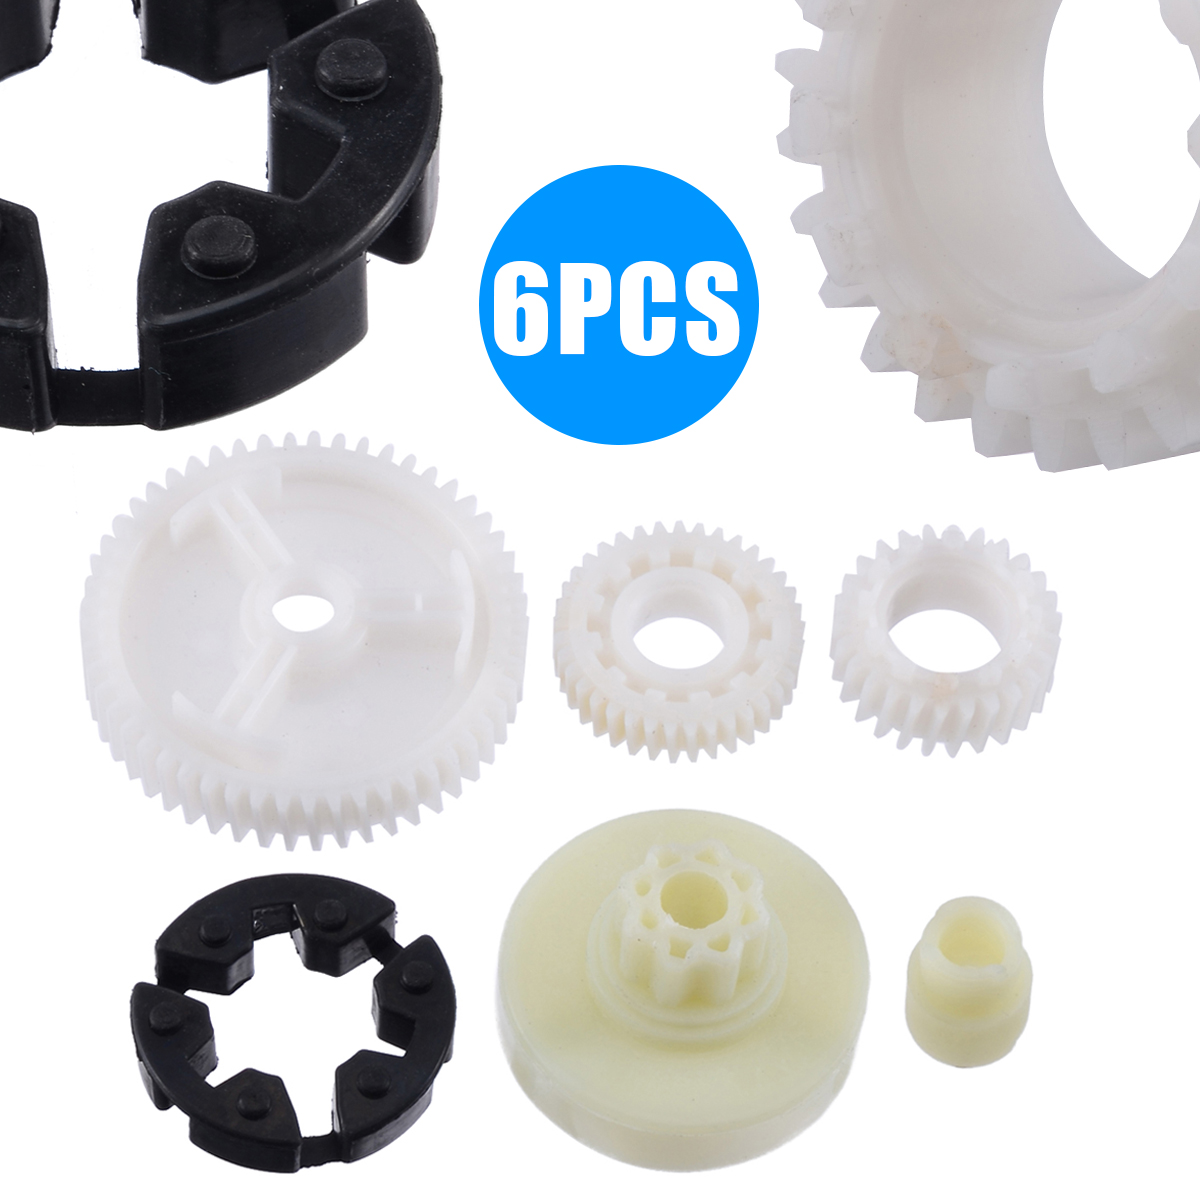 small resolution of auto glasses windows parts 6pcs window motor gear regulator replacement set for mazda 3 5